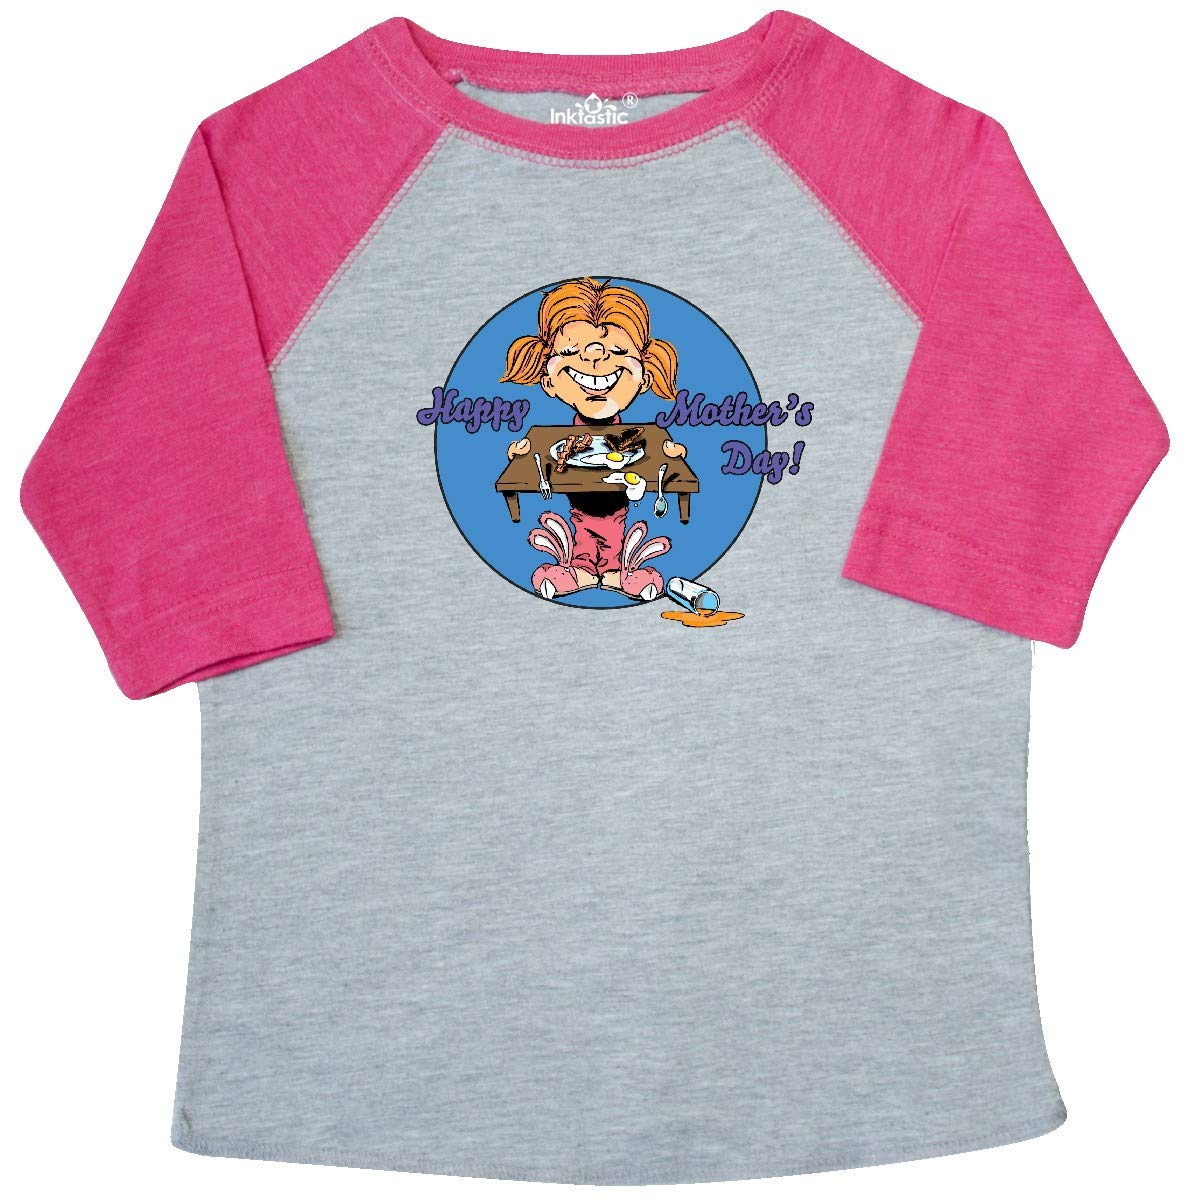 inktastic Happy Mothers Day Redhead Daughter with Breakfast Toddler T-Shirt